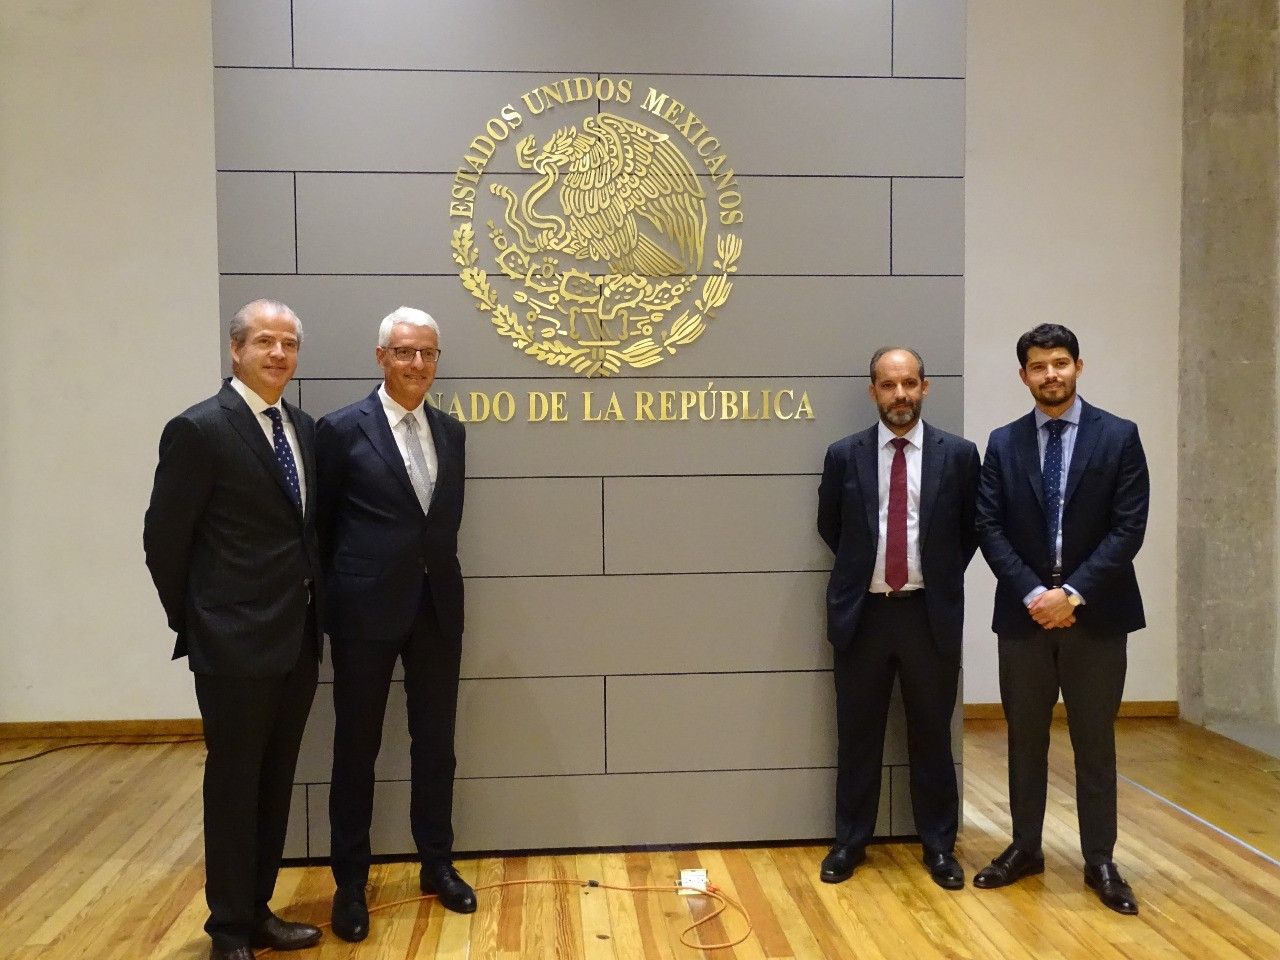 AGM Abogados attends Lawropes annual congress